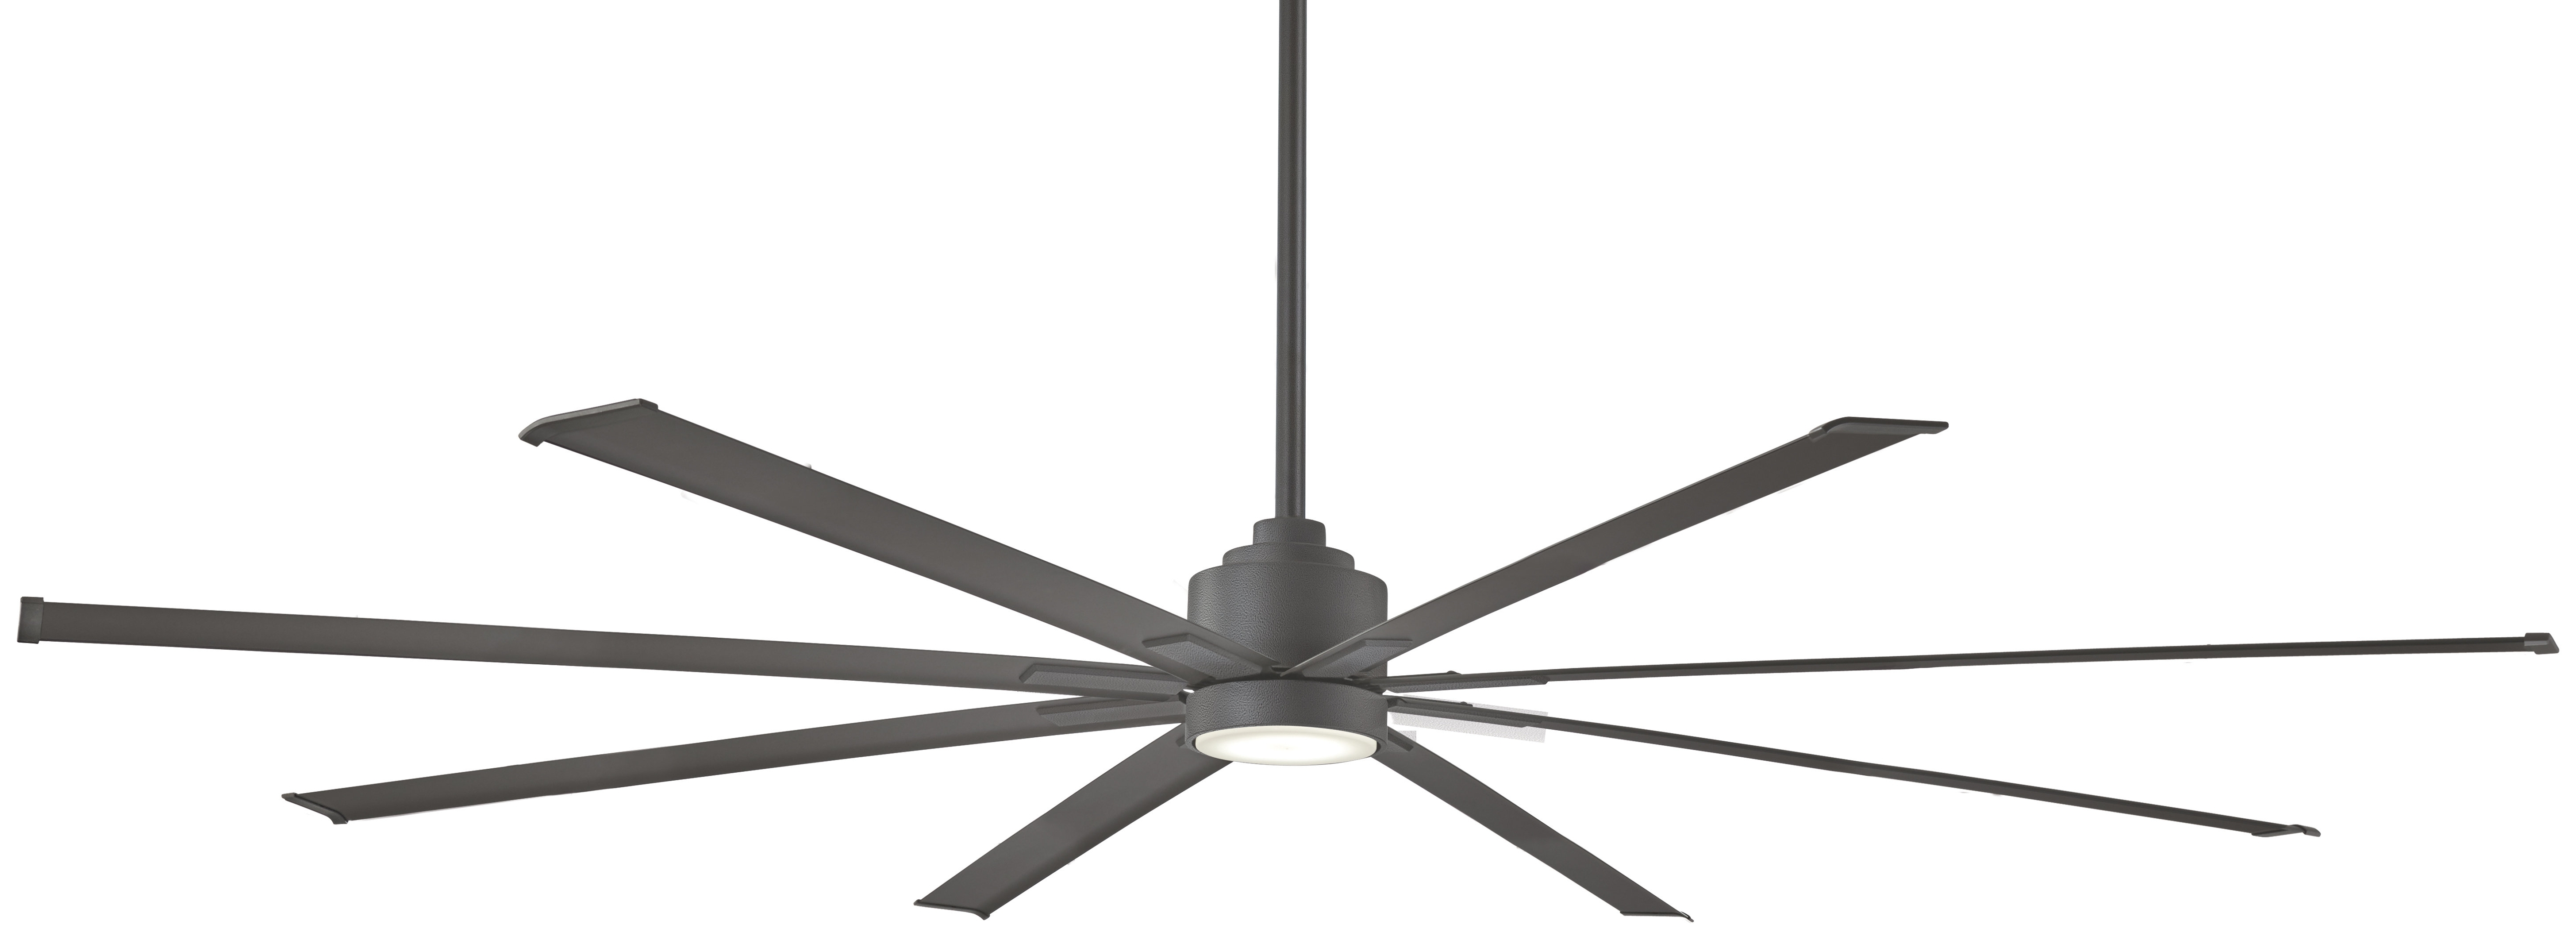 """Trendy Outdoor Ceiling Fans With Remote With Regard To Minka Aire 84"""" Xtreme 8 Outdoor Ceiling Fan With Remote & Reviews (View 20 of 20)"""